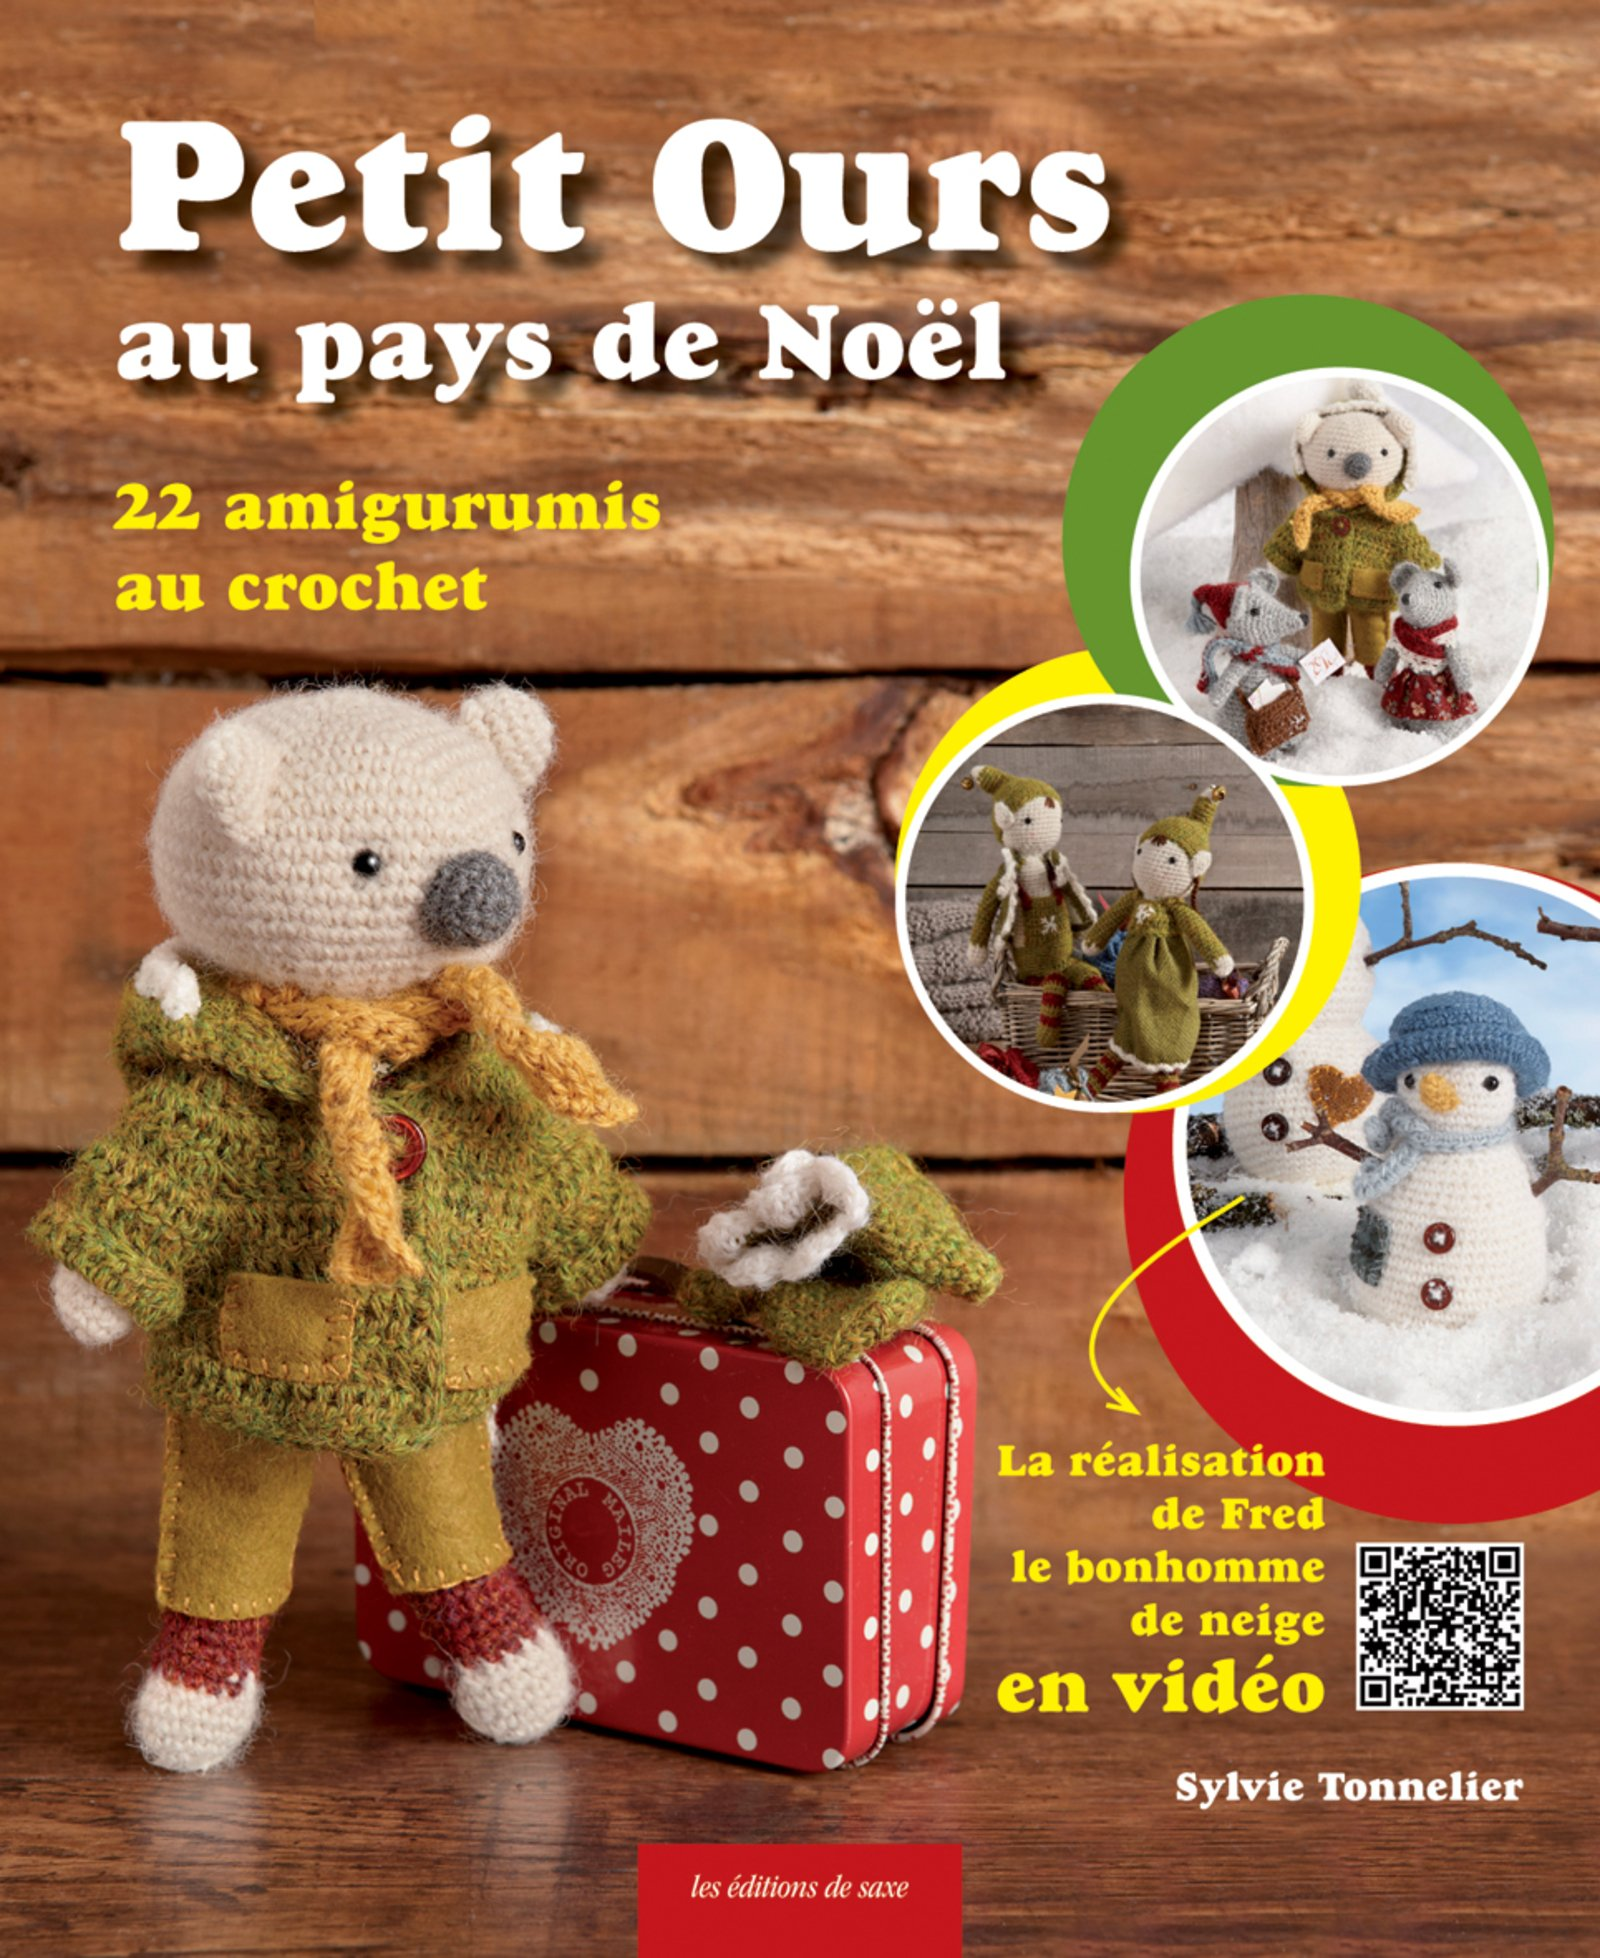 Adorables animaux (Atelier crochet) (French Edition) - Kindle ... | 1958x1600